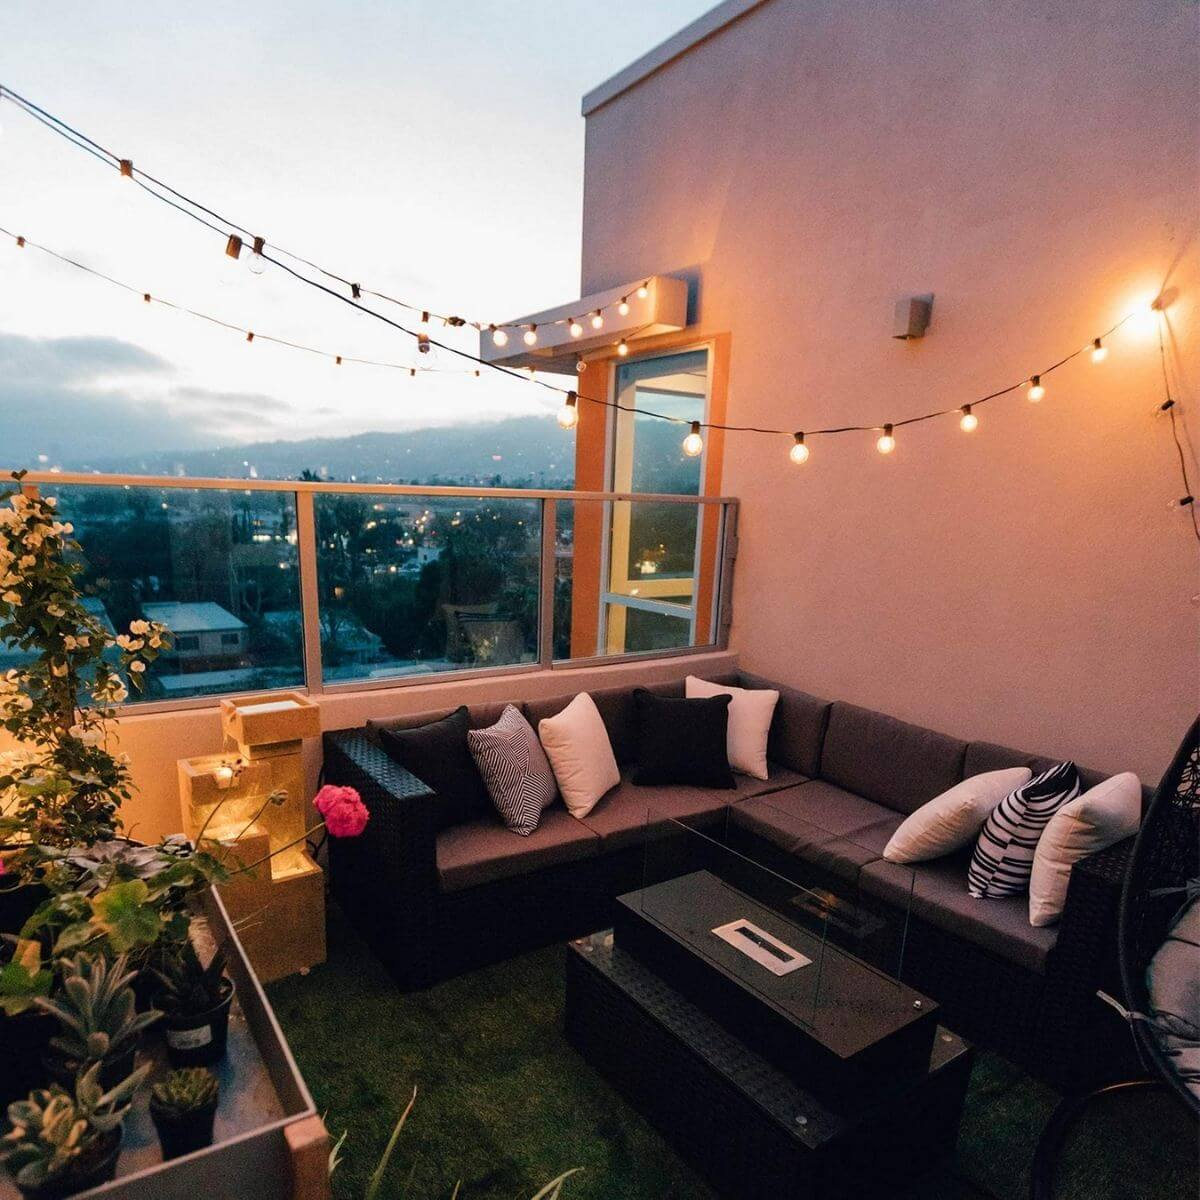 Balcony with string lights, a couch, and plants.